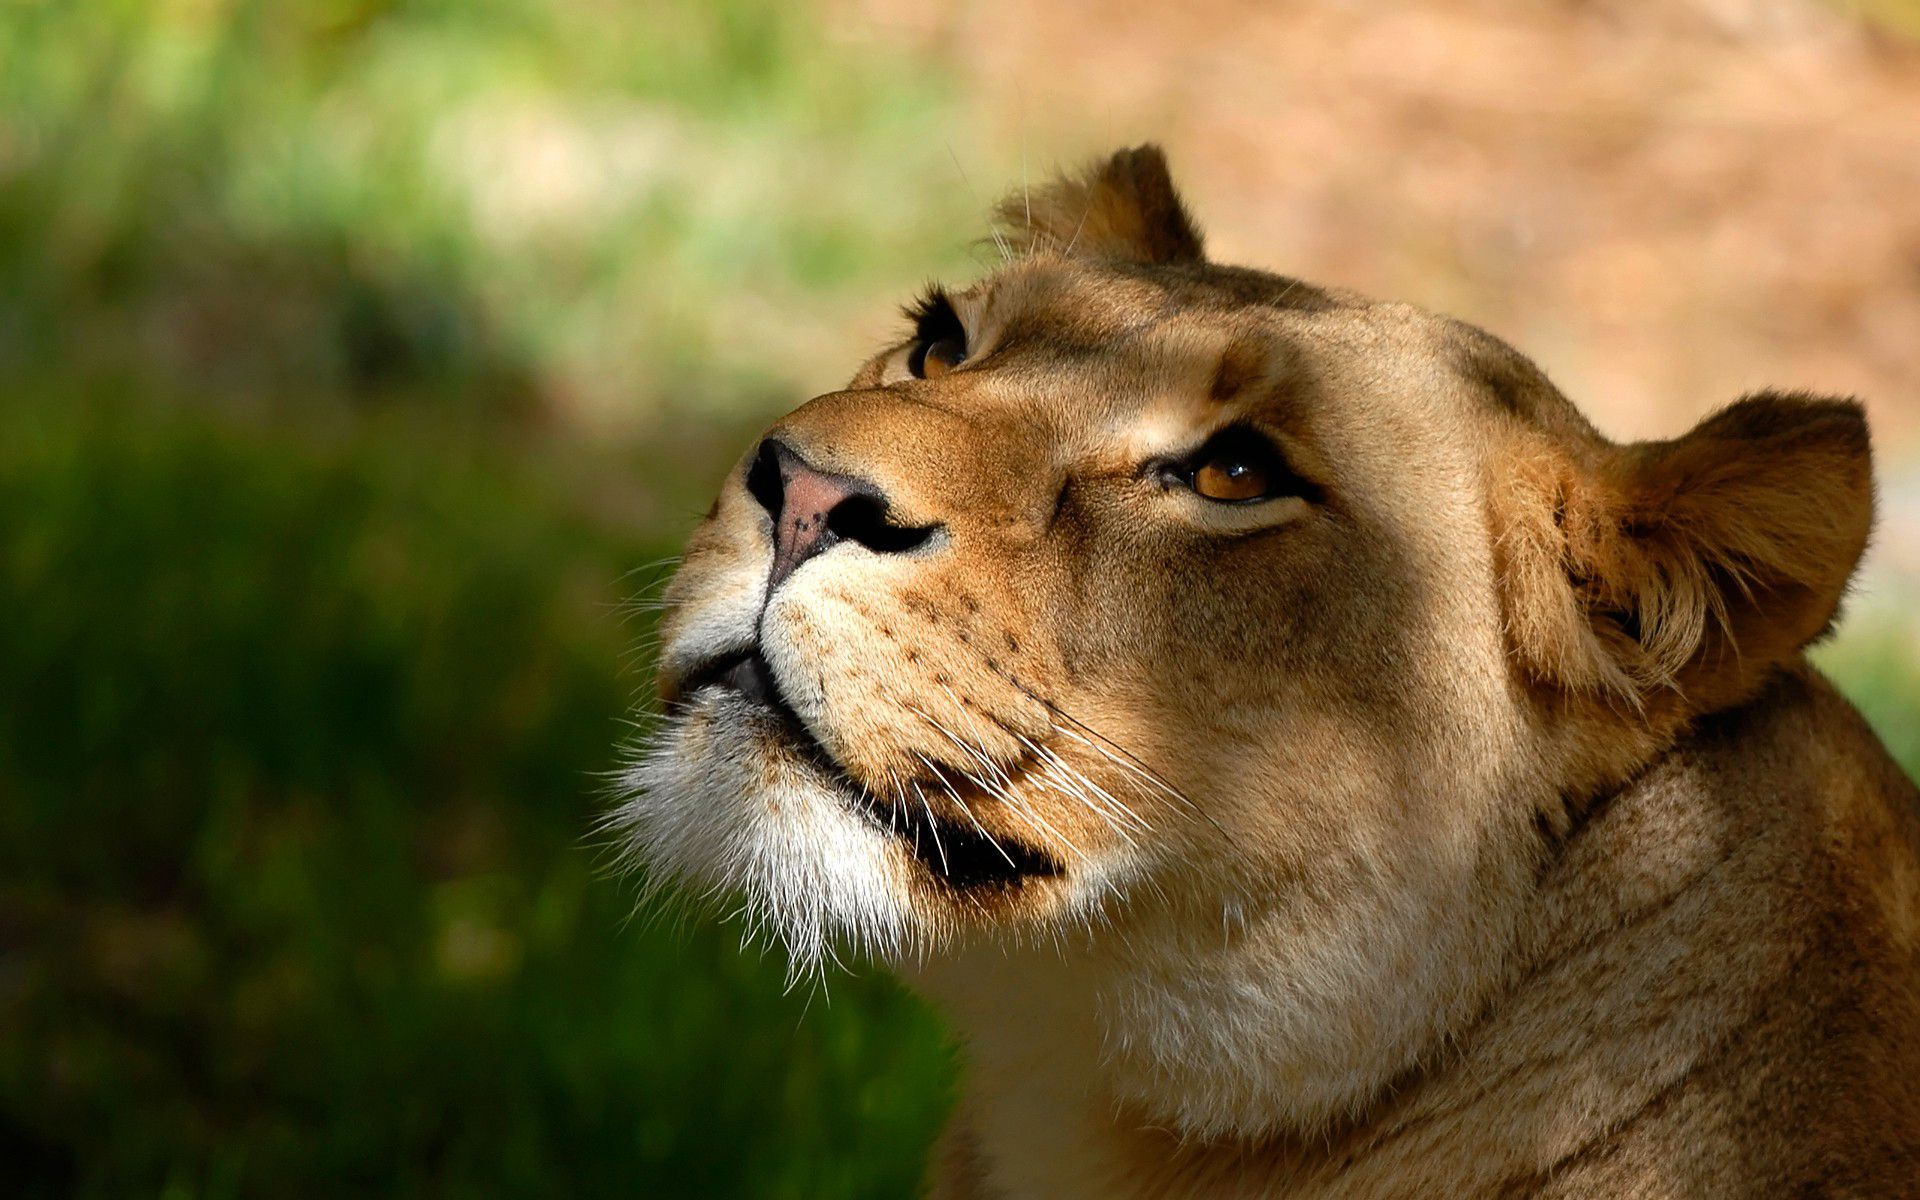 Lioness Wallpapers Hd Wallpapers Pulse Lion Jungle Lion Lion